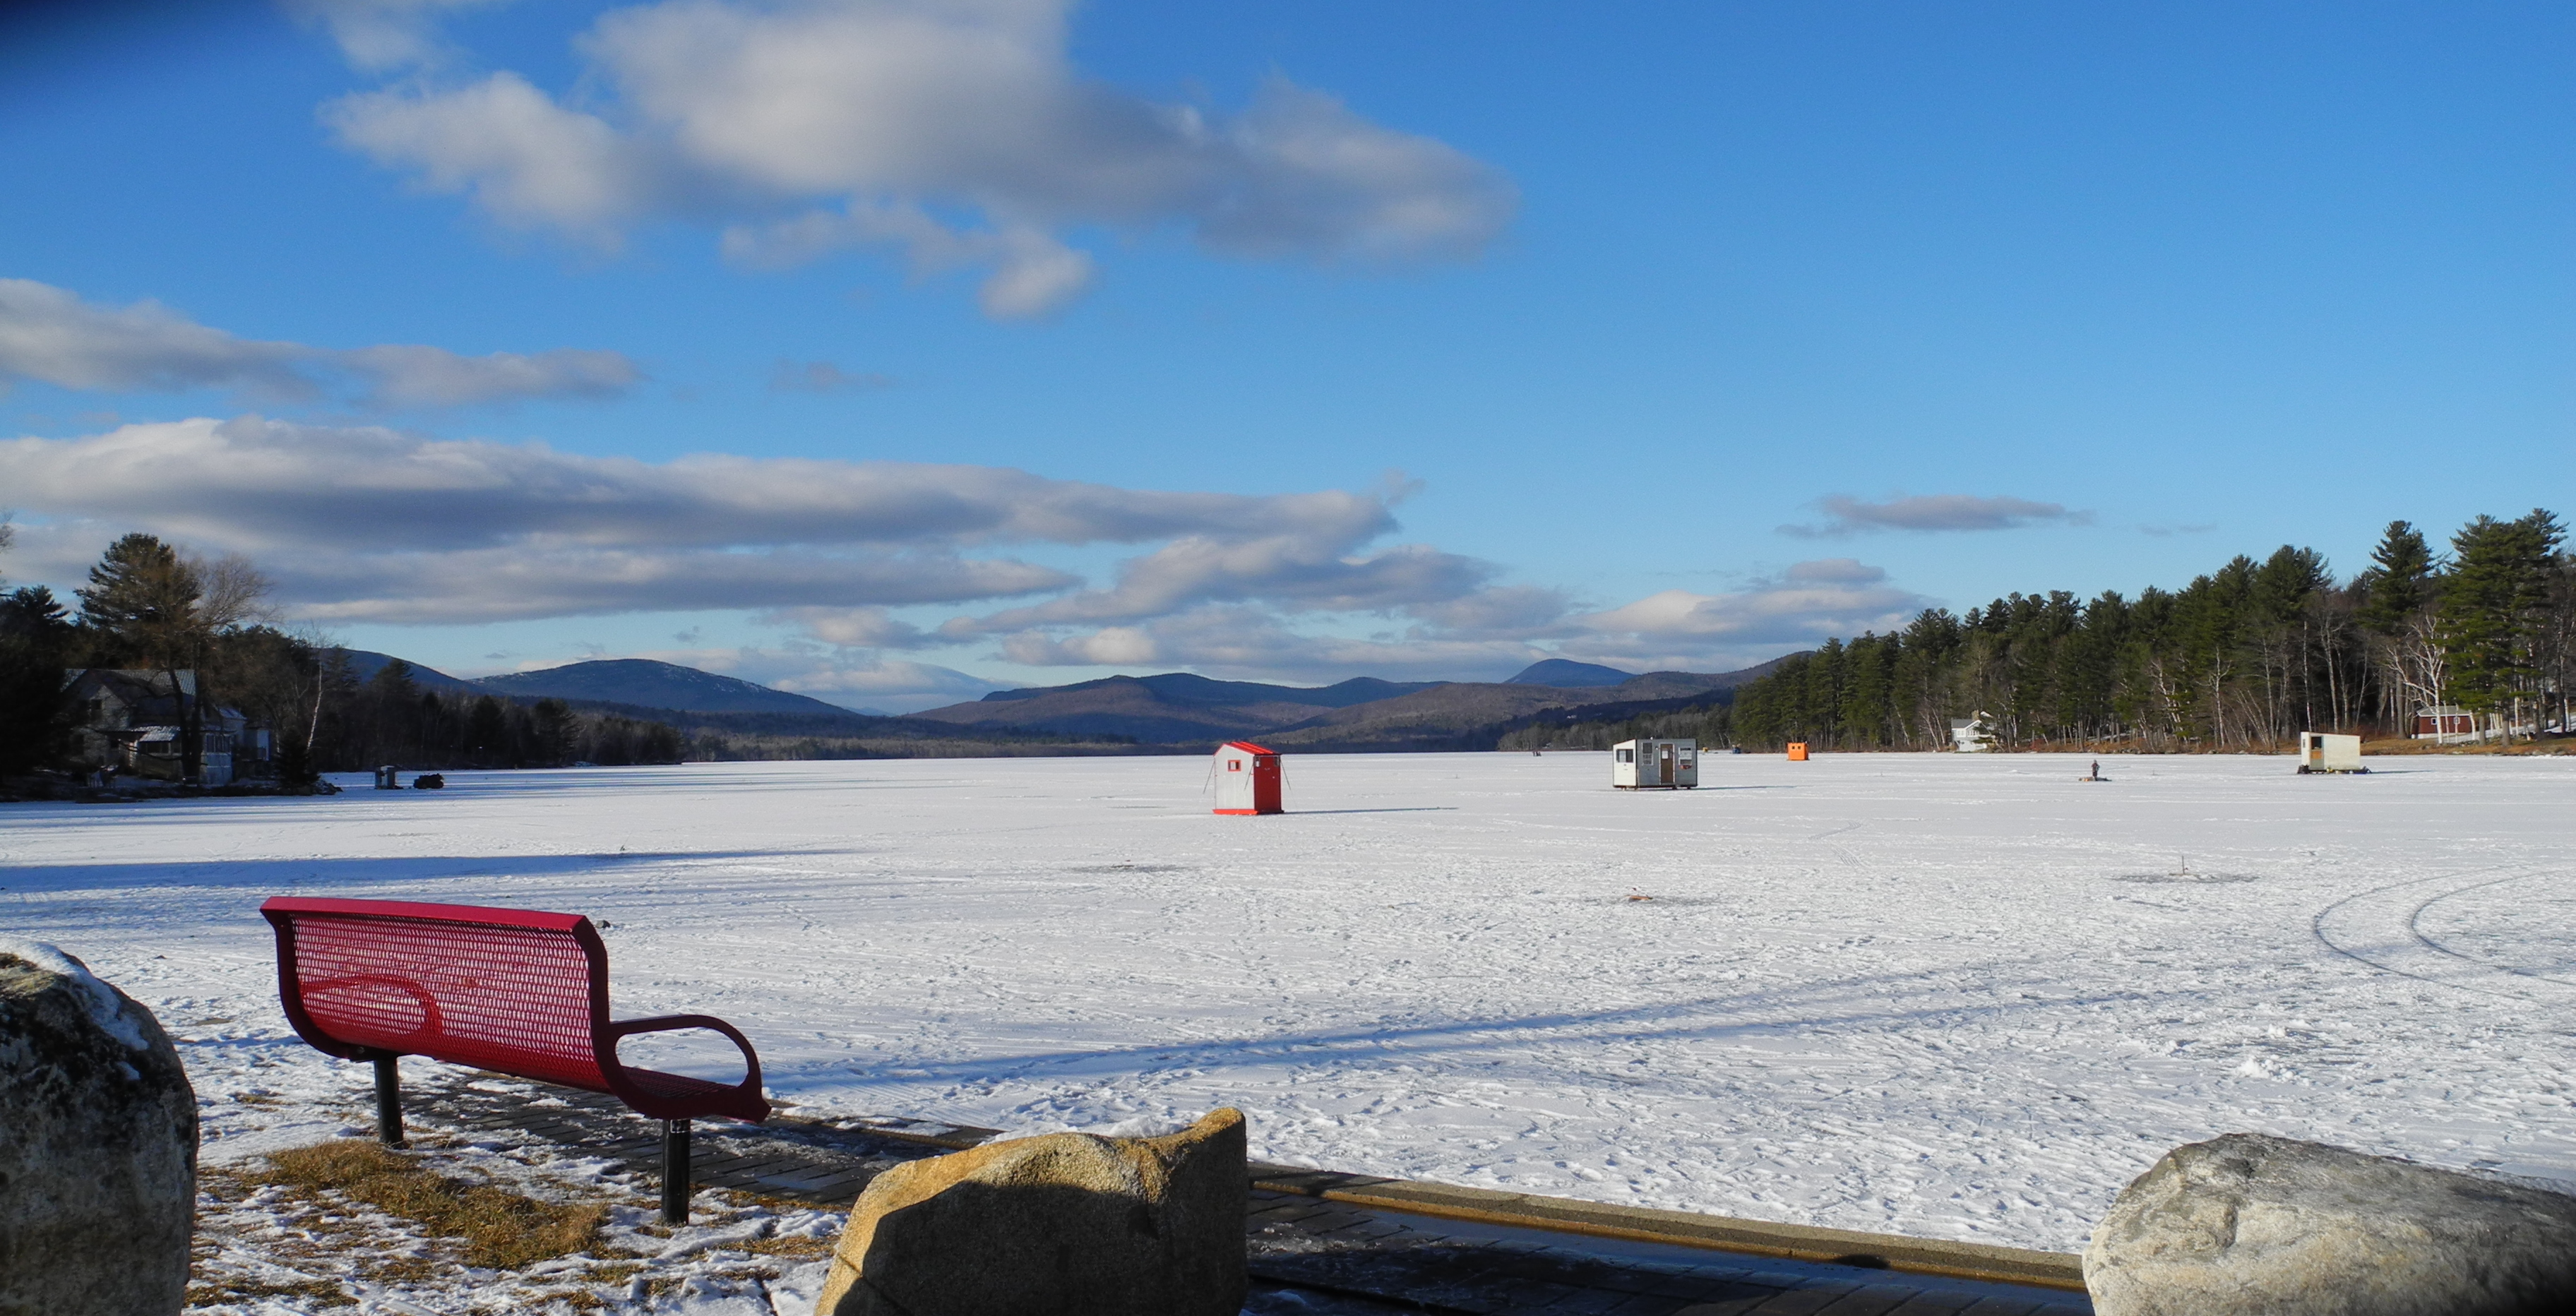 Ice Fishing on Wilson Lake